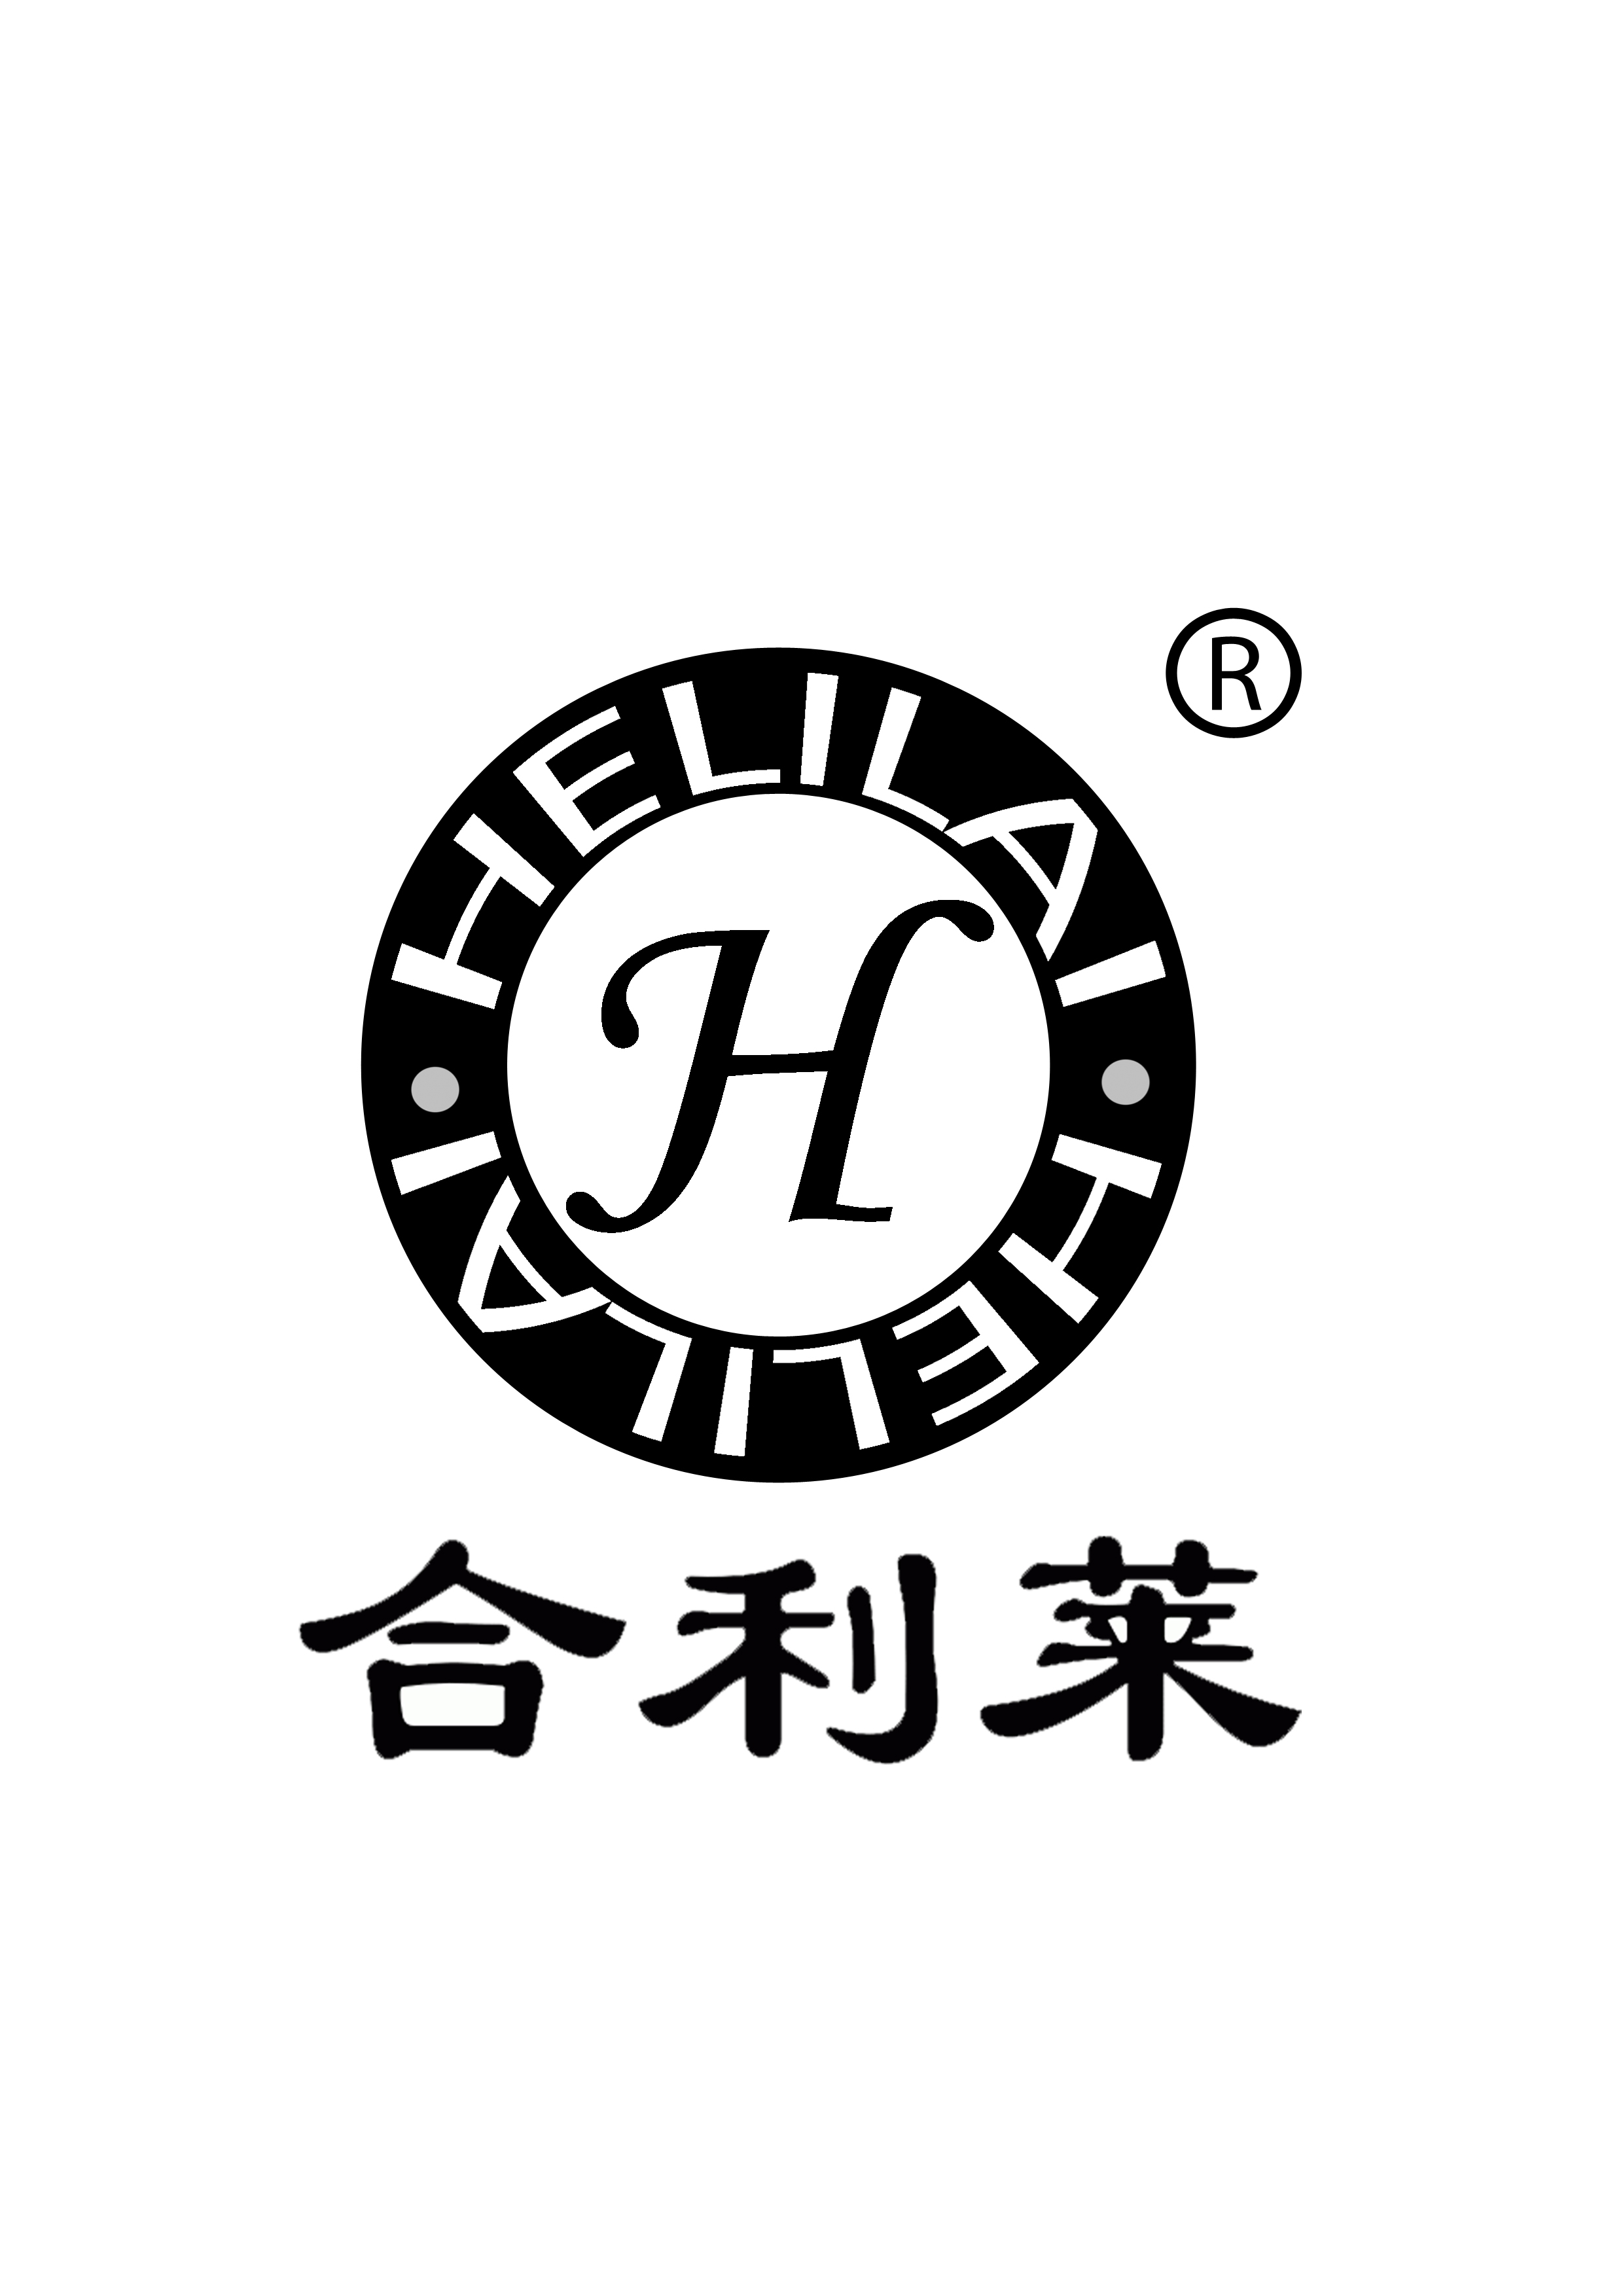 Lixian Helilai Leather And Garments Co., Ltd.